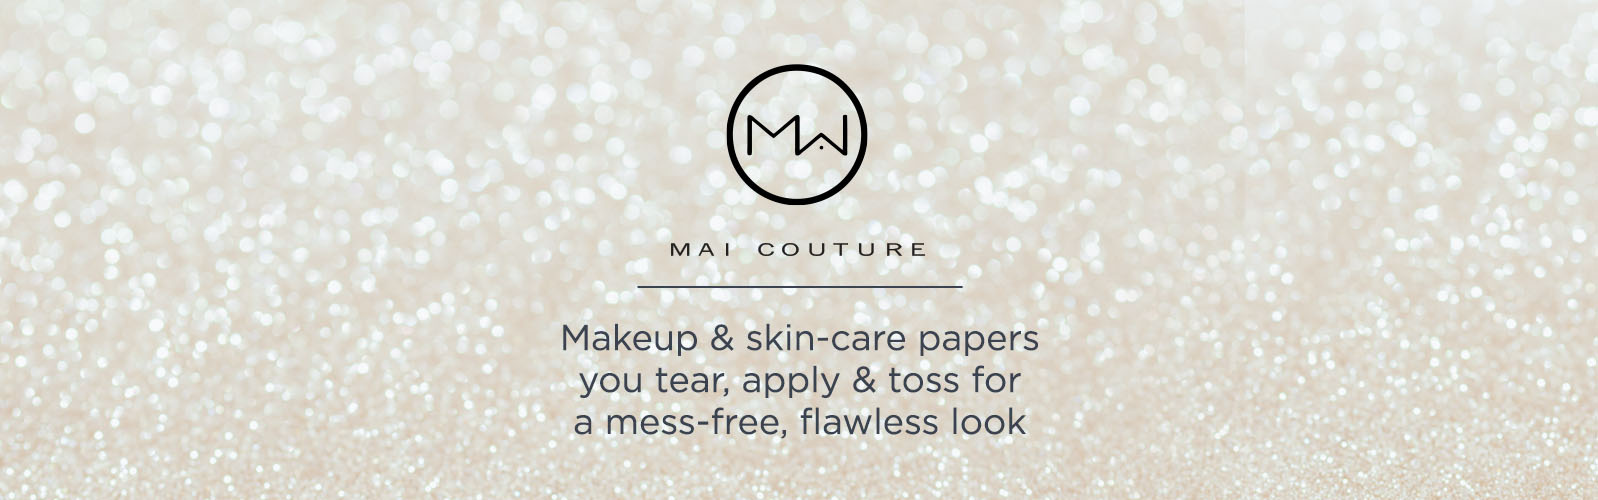 Mai Couture. Makeup & skin-care papers you tear, apply & toss for a mess-free, flawless look